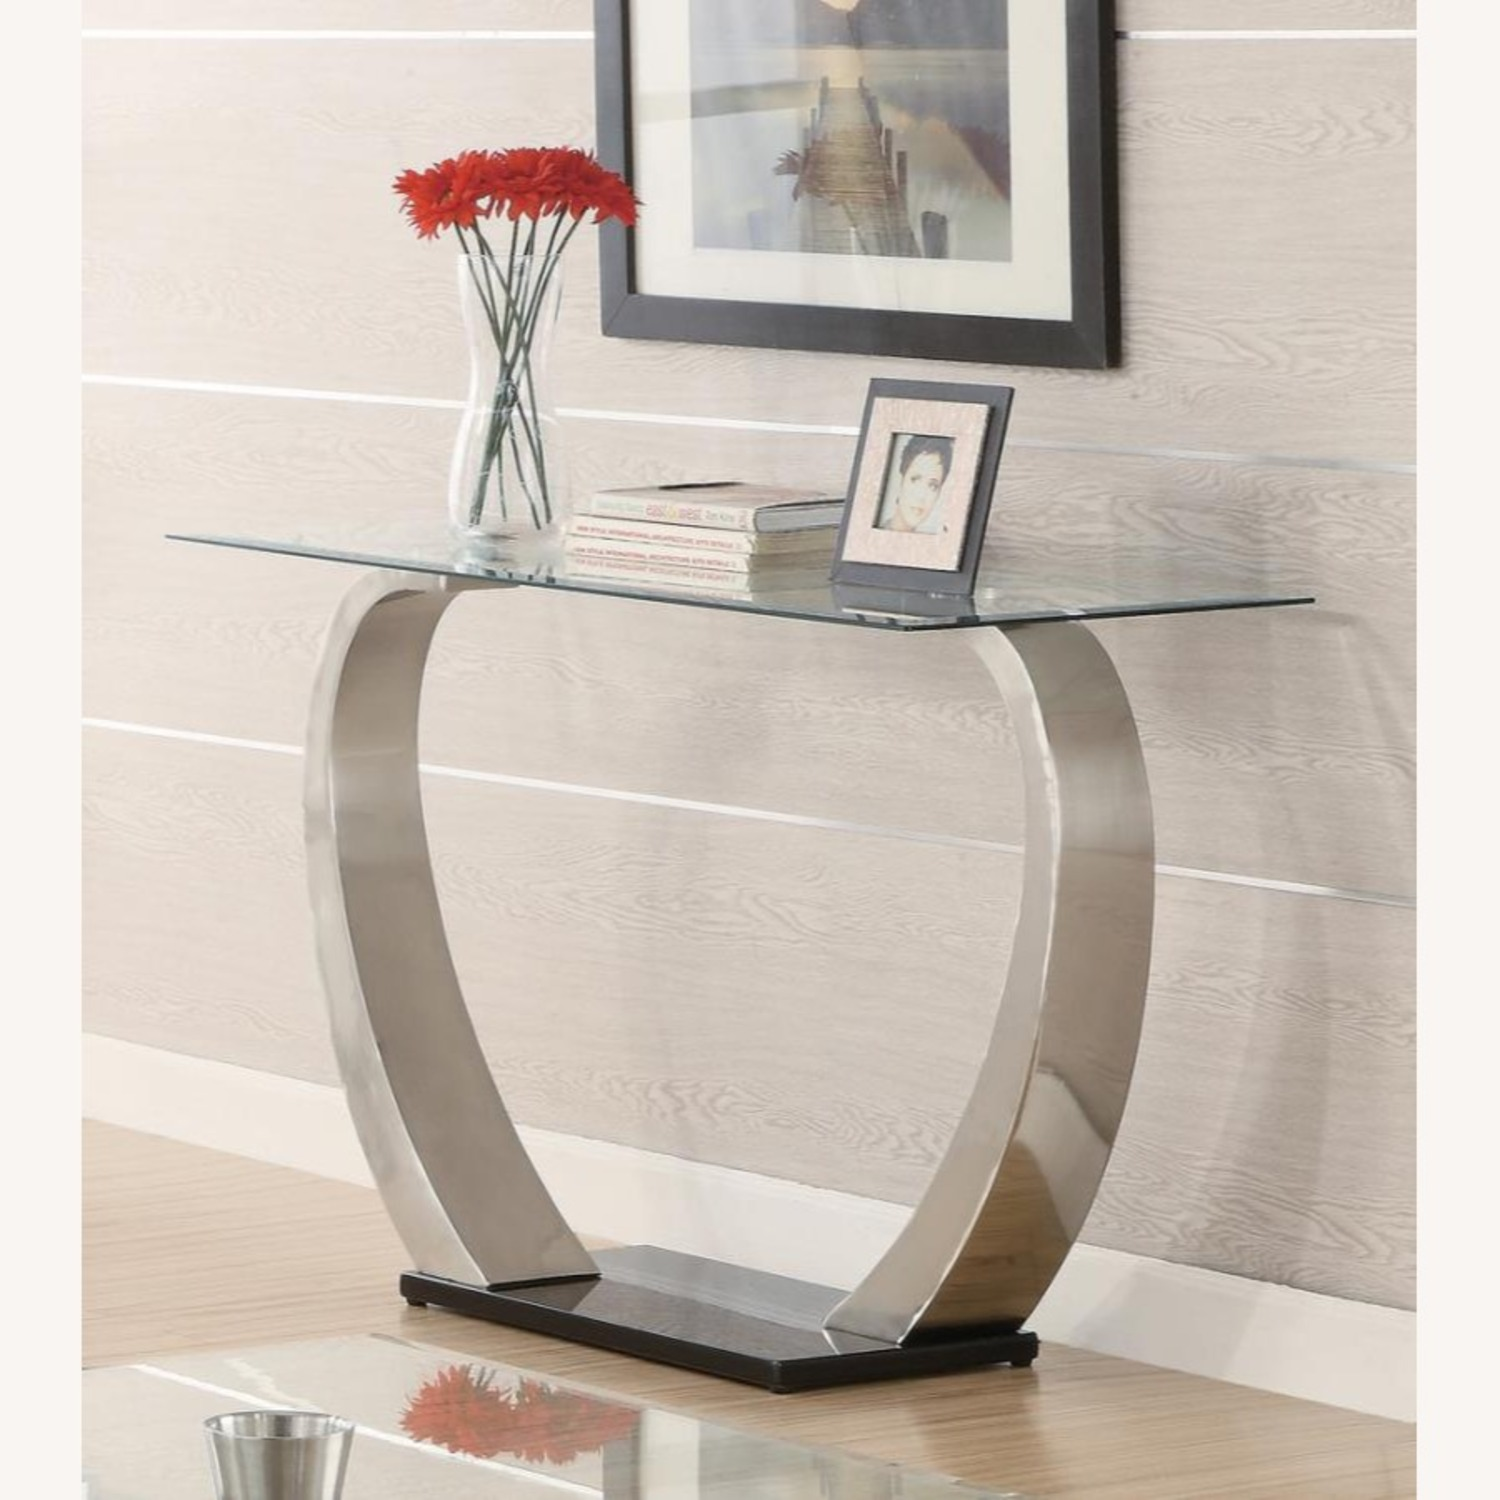 Sofa Table In Satin Finish W/ Glass Top - image-1